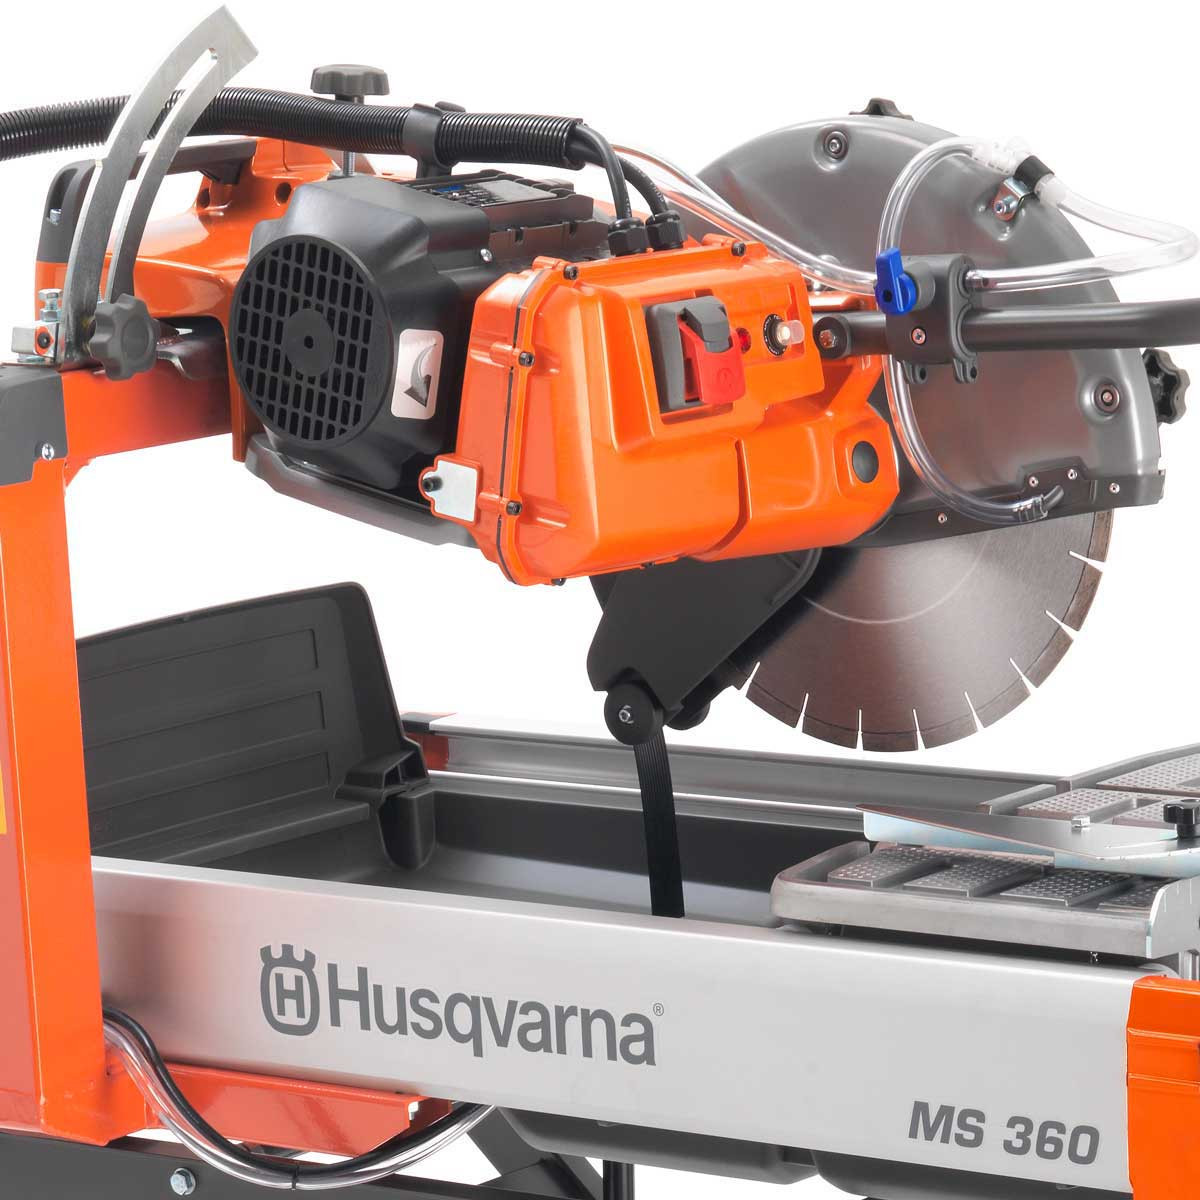 husqvarna ms 360 masonry saw motor with water feed